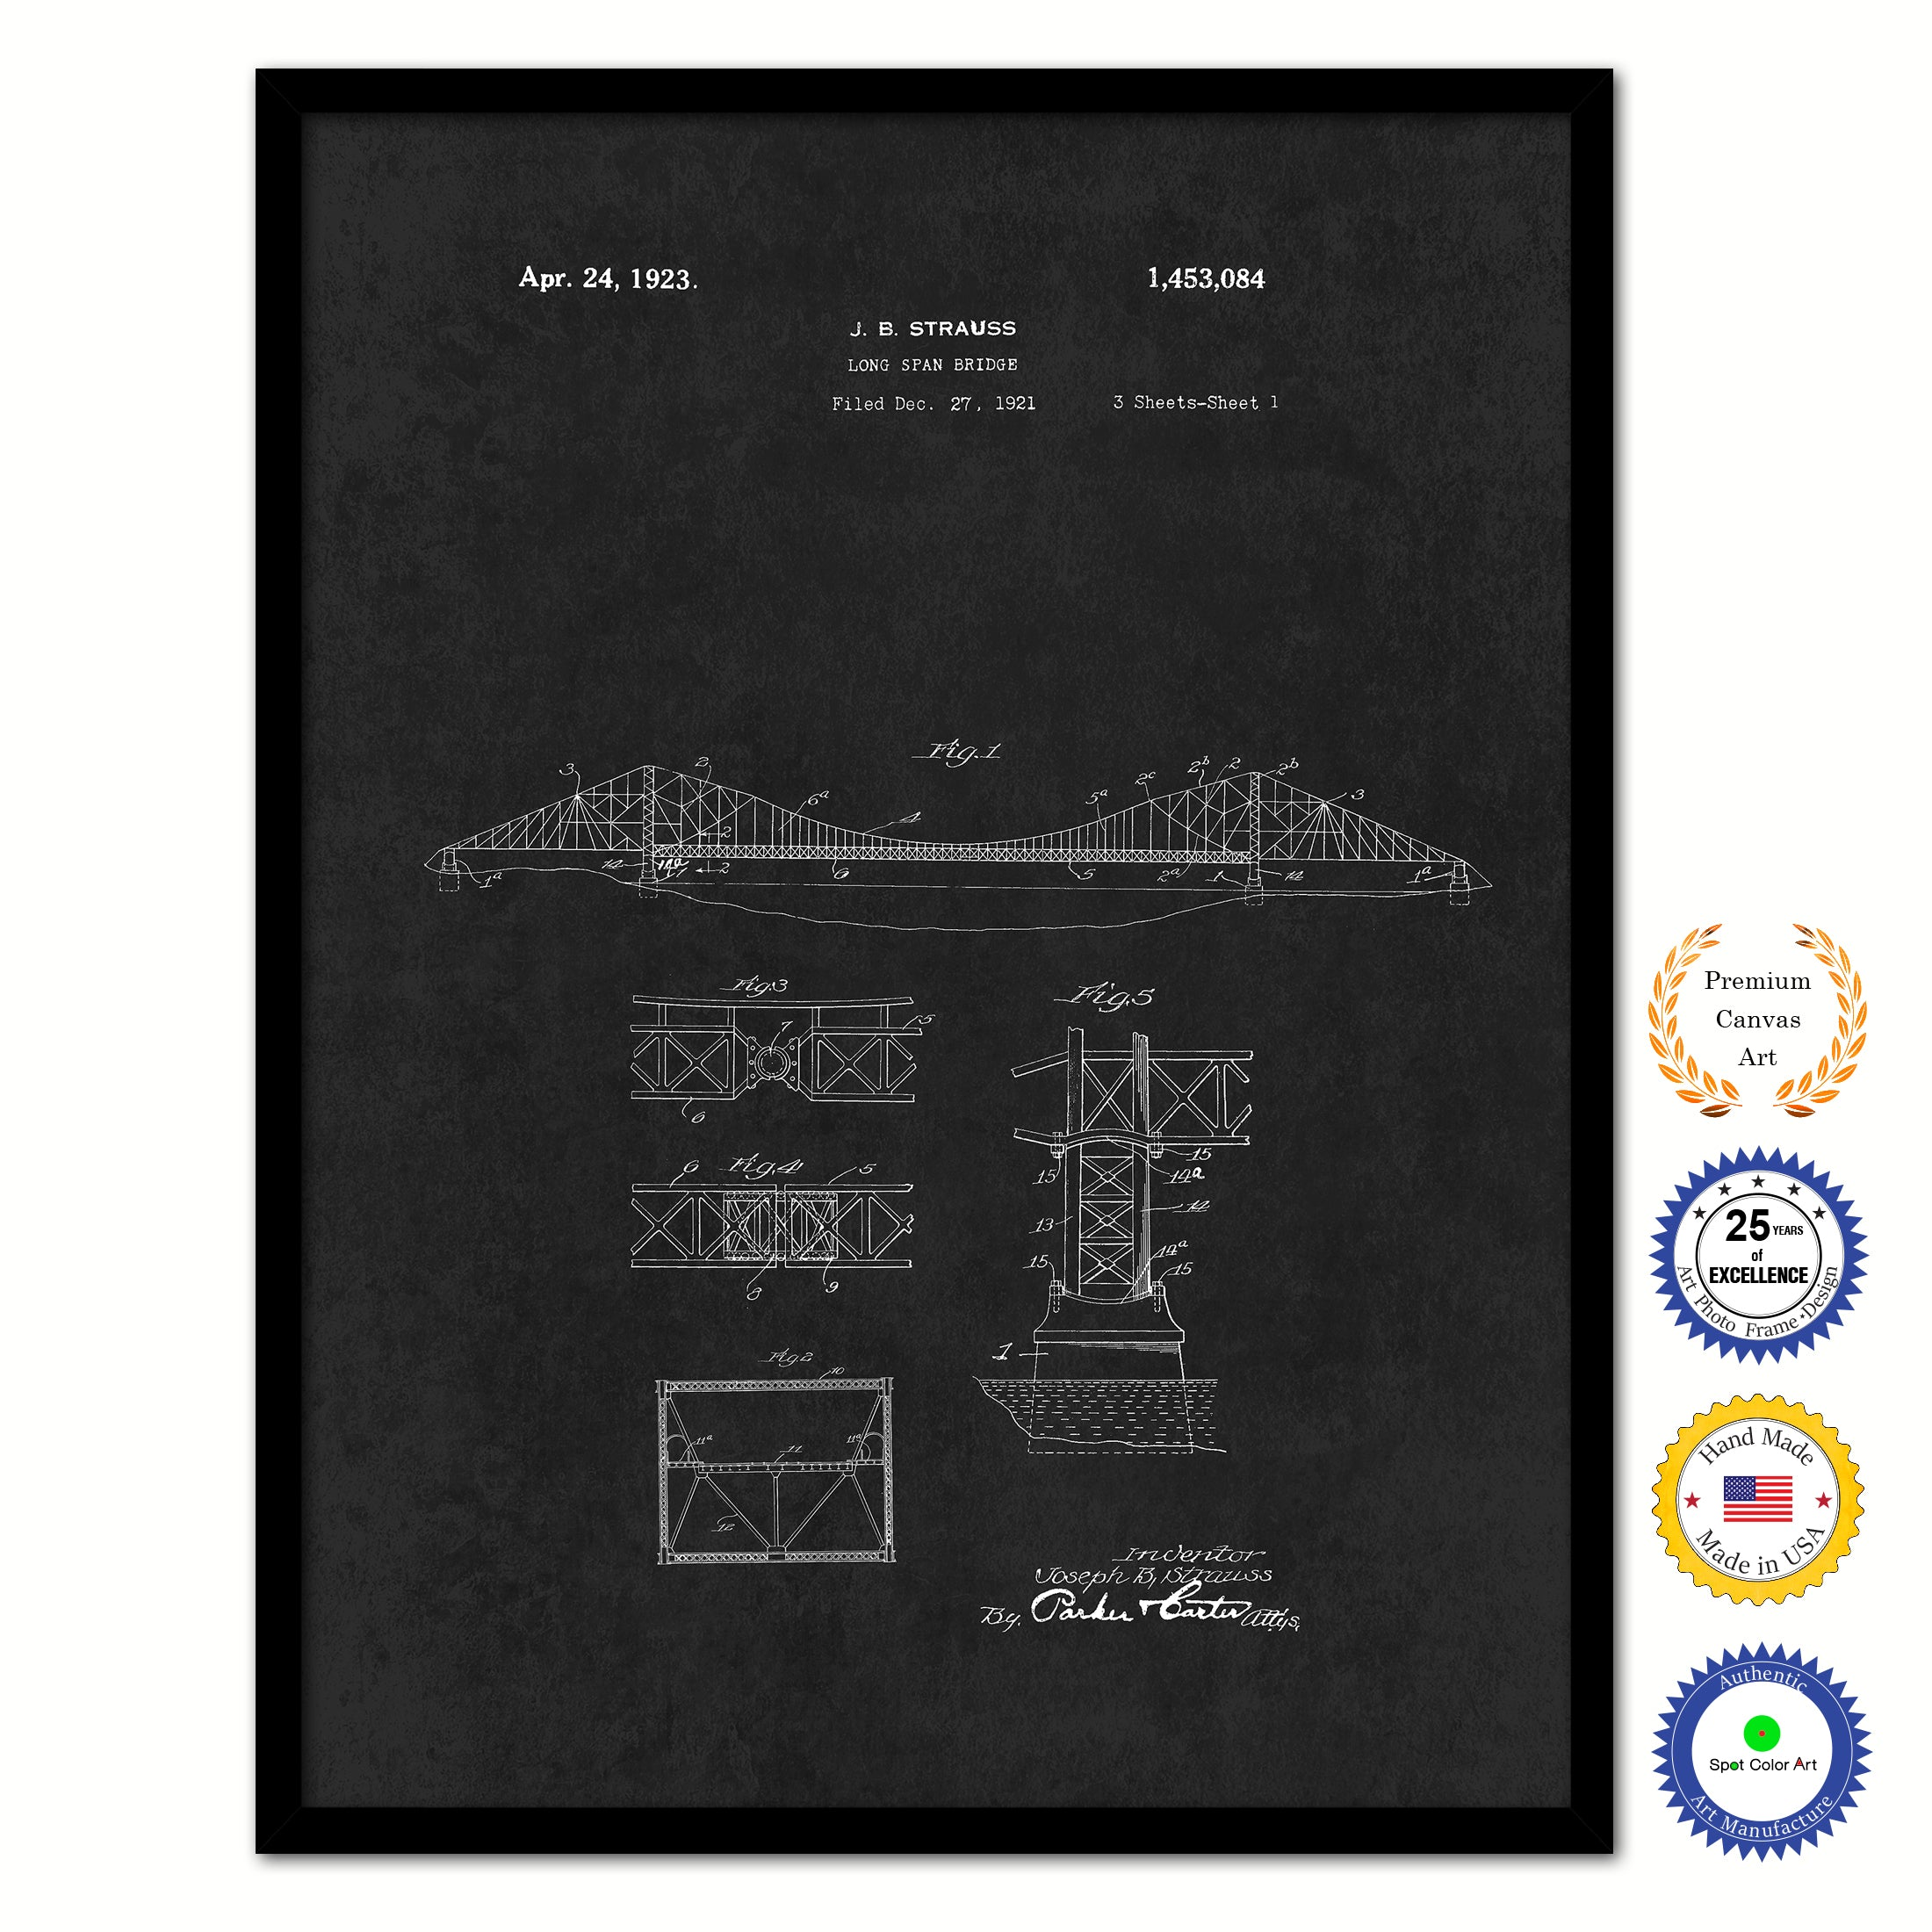 1923 Long Span Bridge Vintage Patent Artwork Black Framed Canvas Home Office Decor Great Gift for Engineers Architects Construction Workers